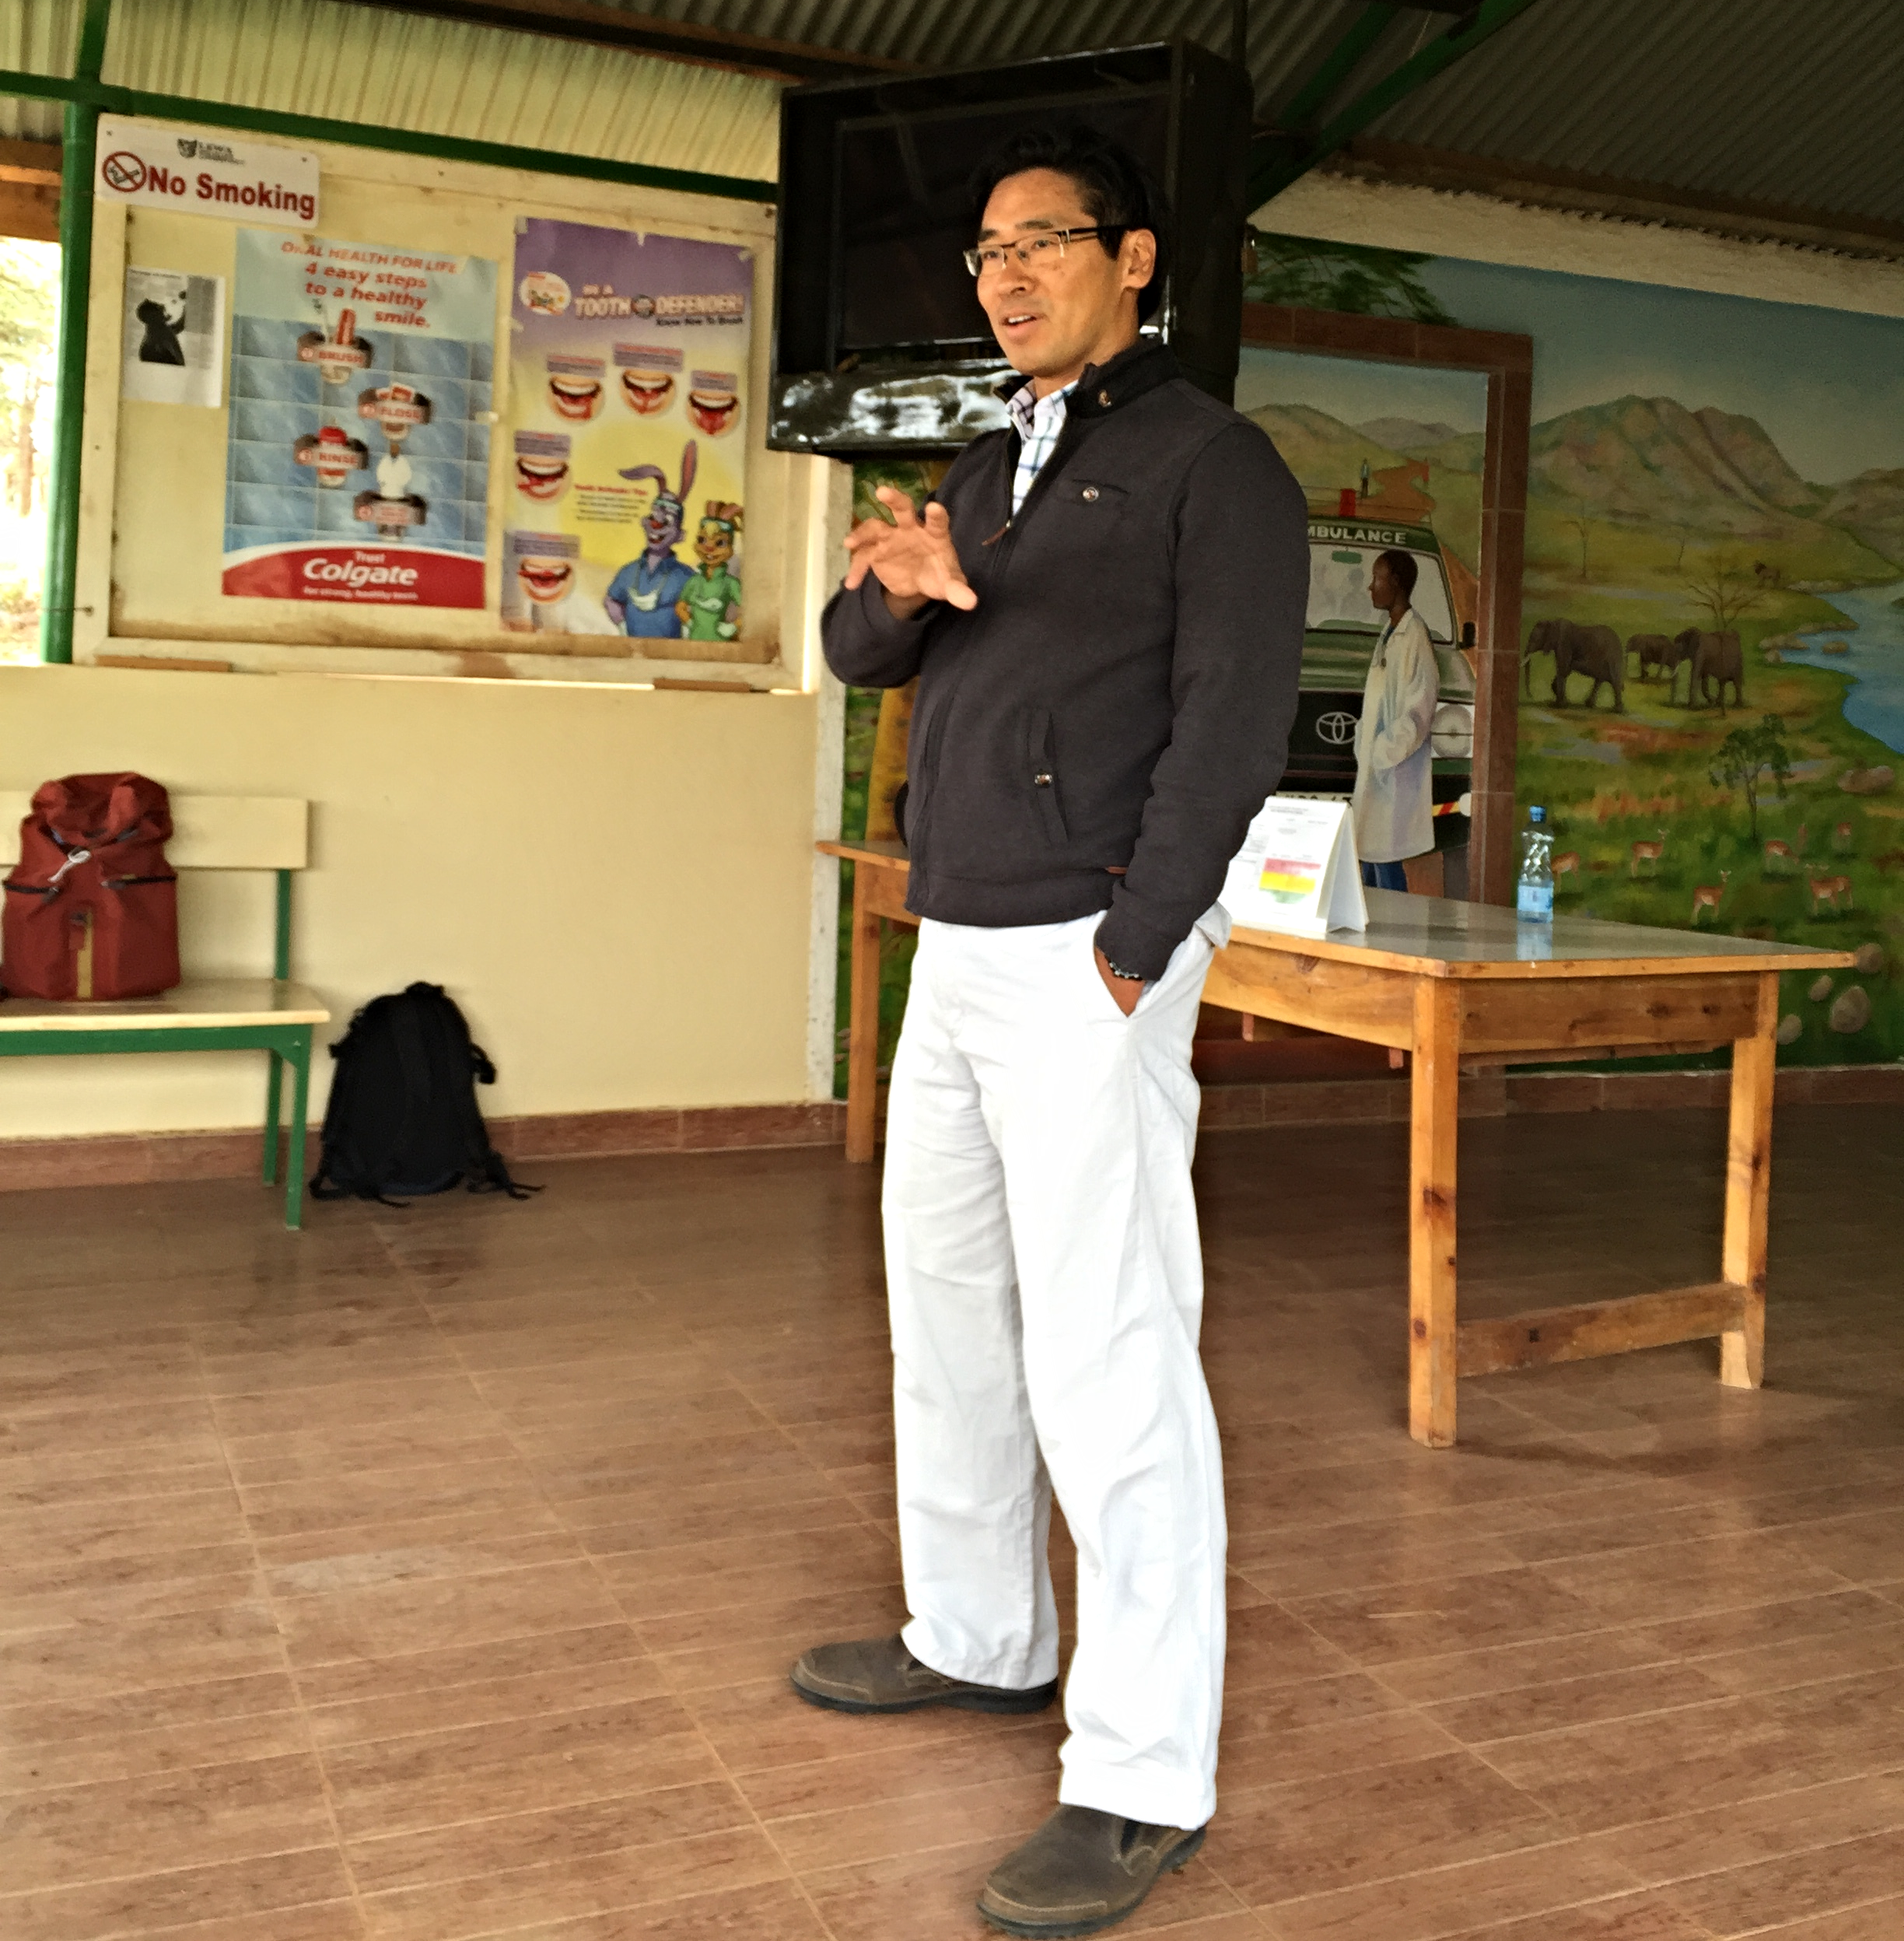 Dr. James giving a talk on chronic disease, which included a review of the World Health Organization's guidelines.